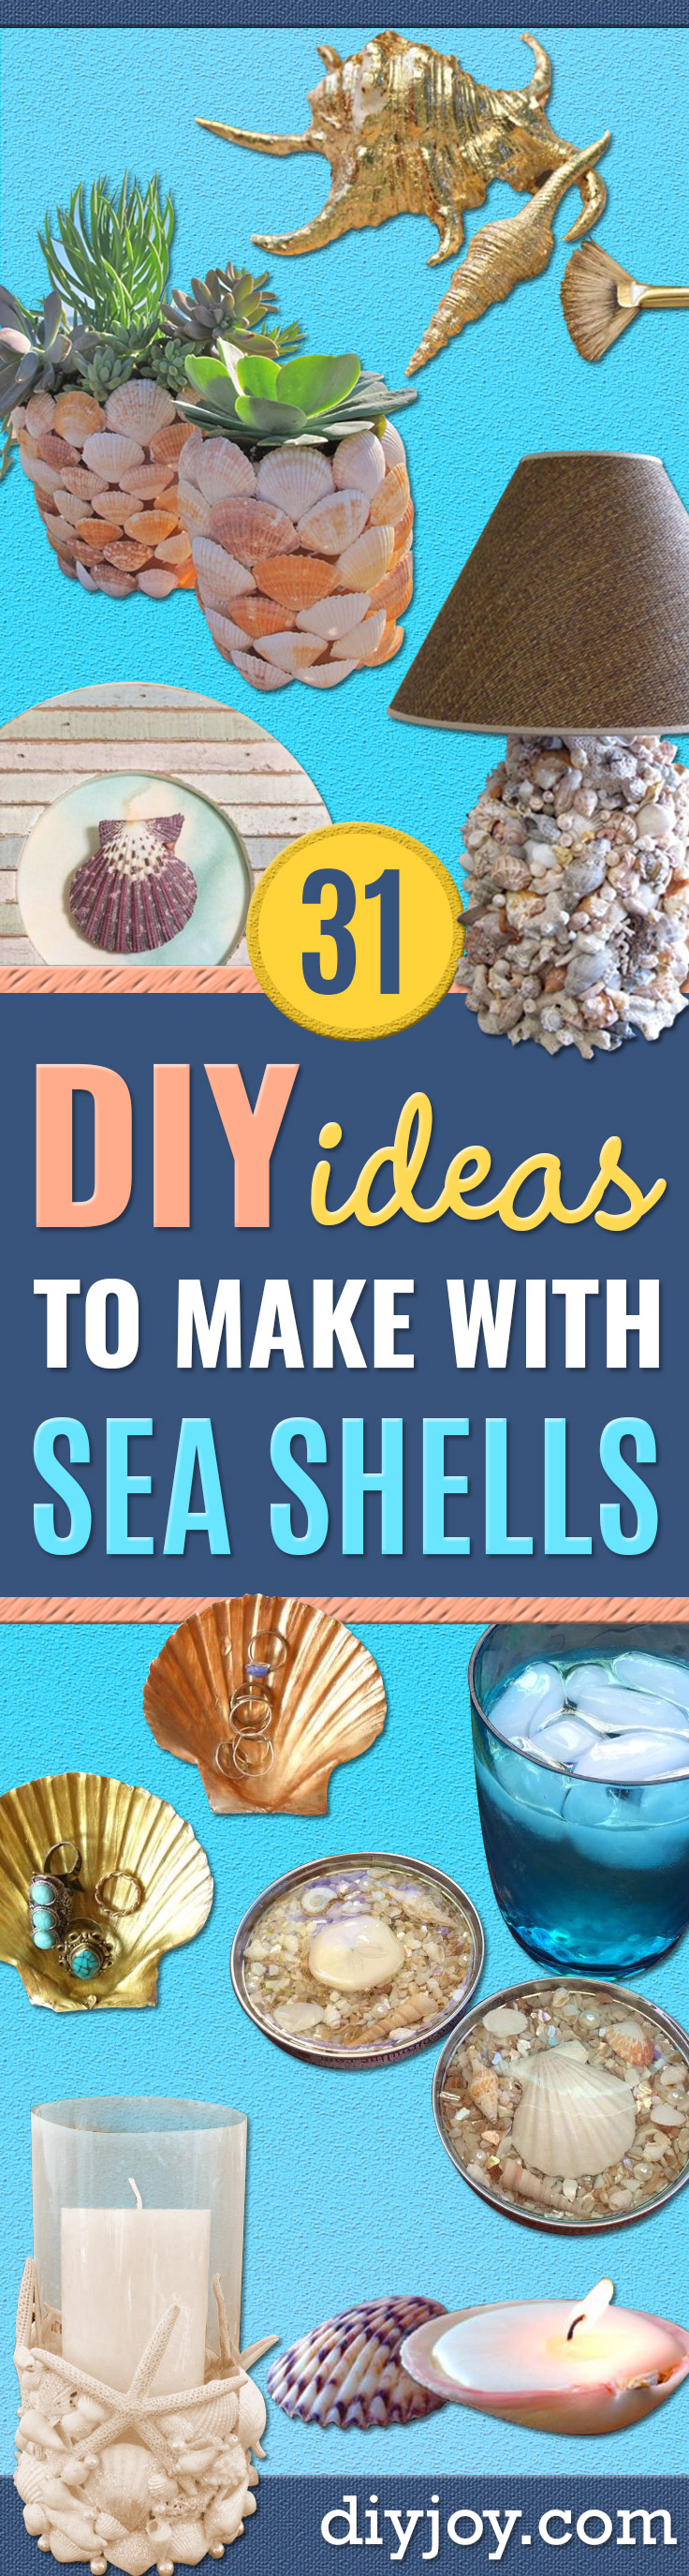 DIY Ideas With Sea Shells - Best Cute Sea Shell Crafts for Adults and Kids - Easy Beach House Decor Ideas With Sand and Large Shell Art - Wall Decor and Home, Bedroom and Bath - Cheap DIY Projects Make Awesome Homemade Gifts http://diyjoy.com/diy-ideas-sea-shells